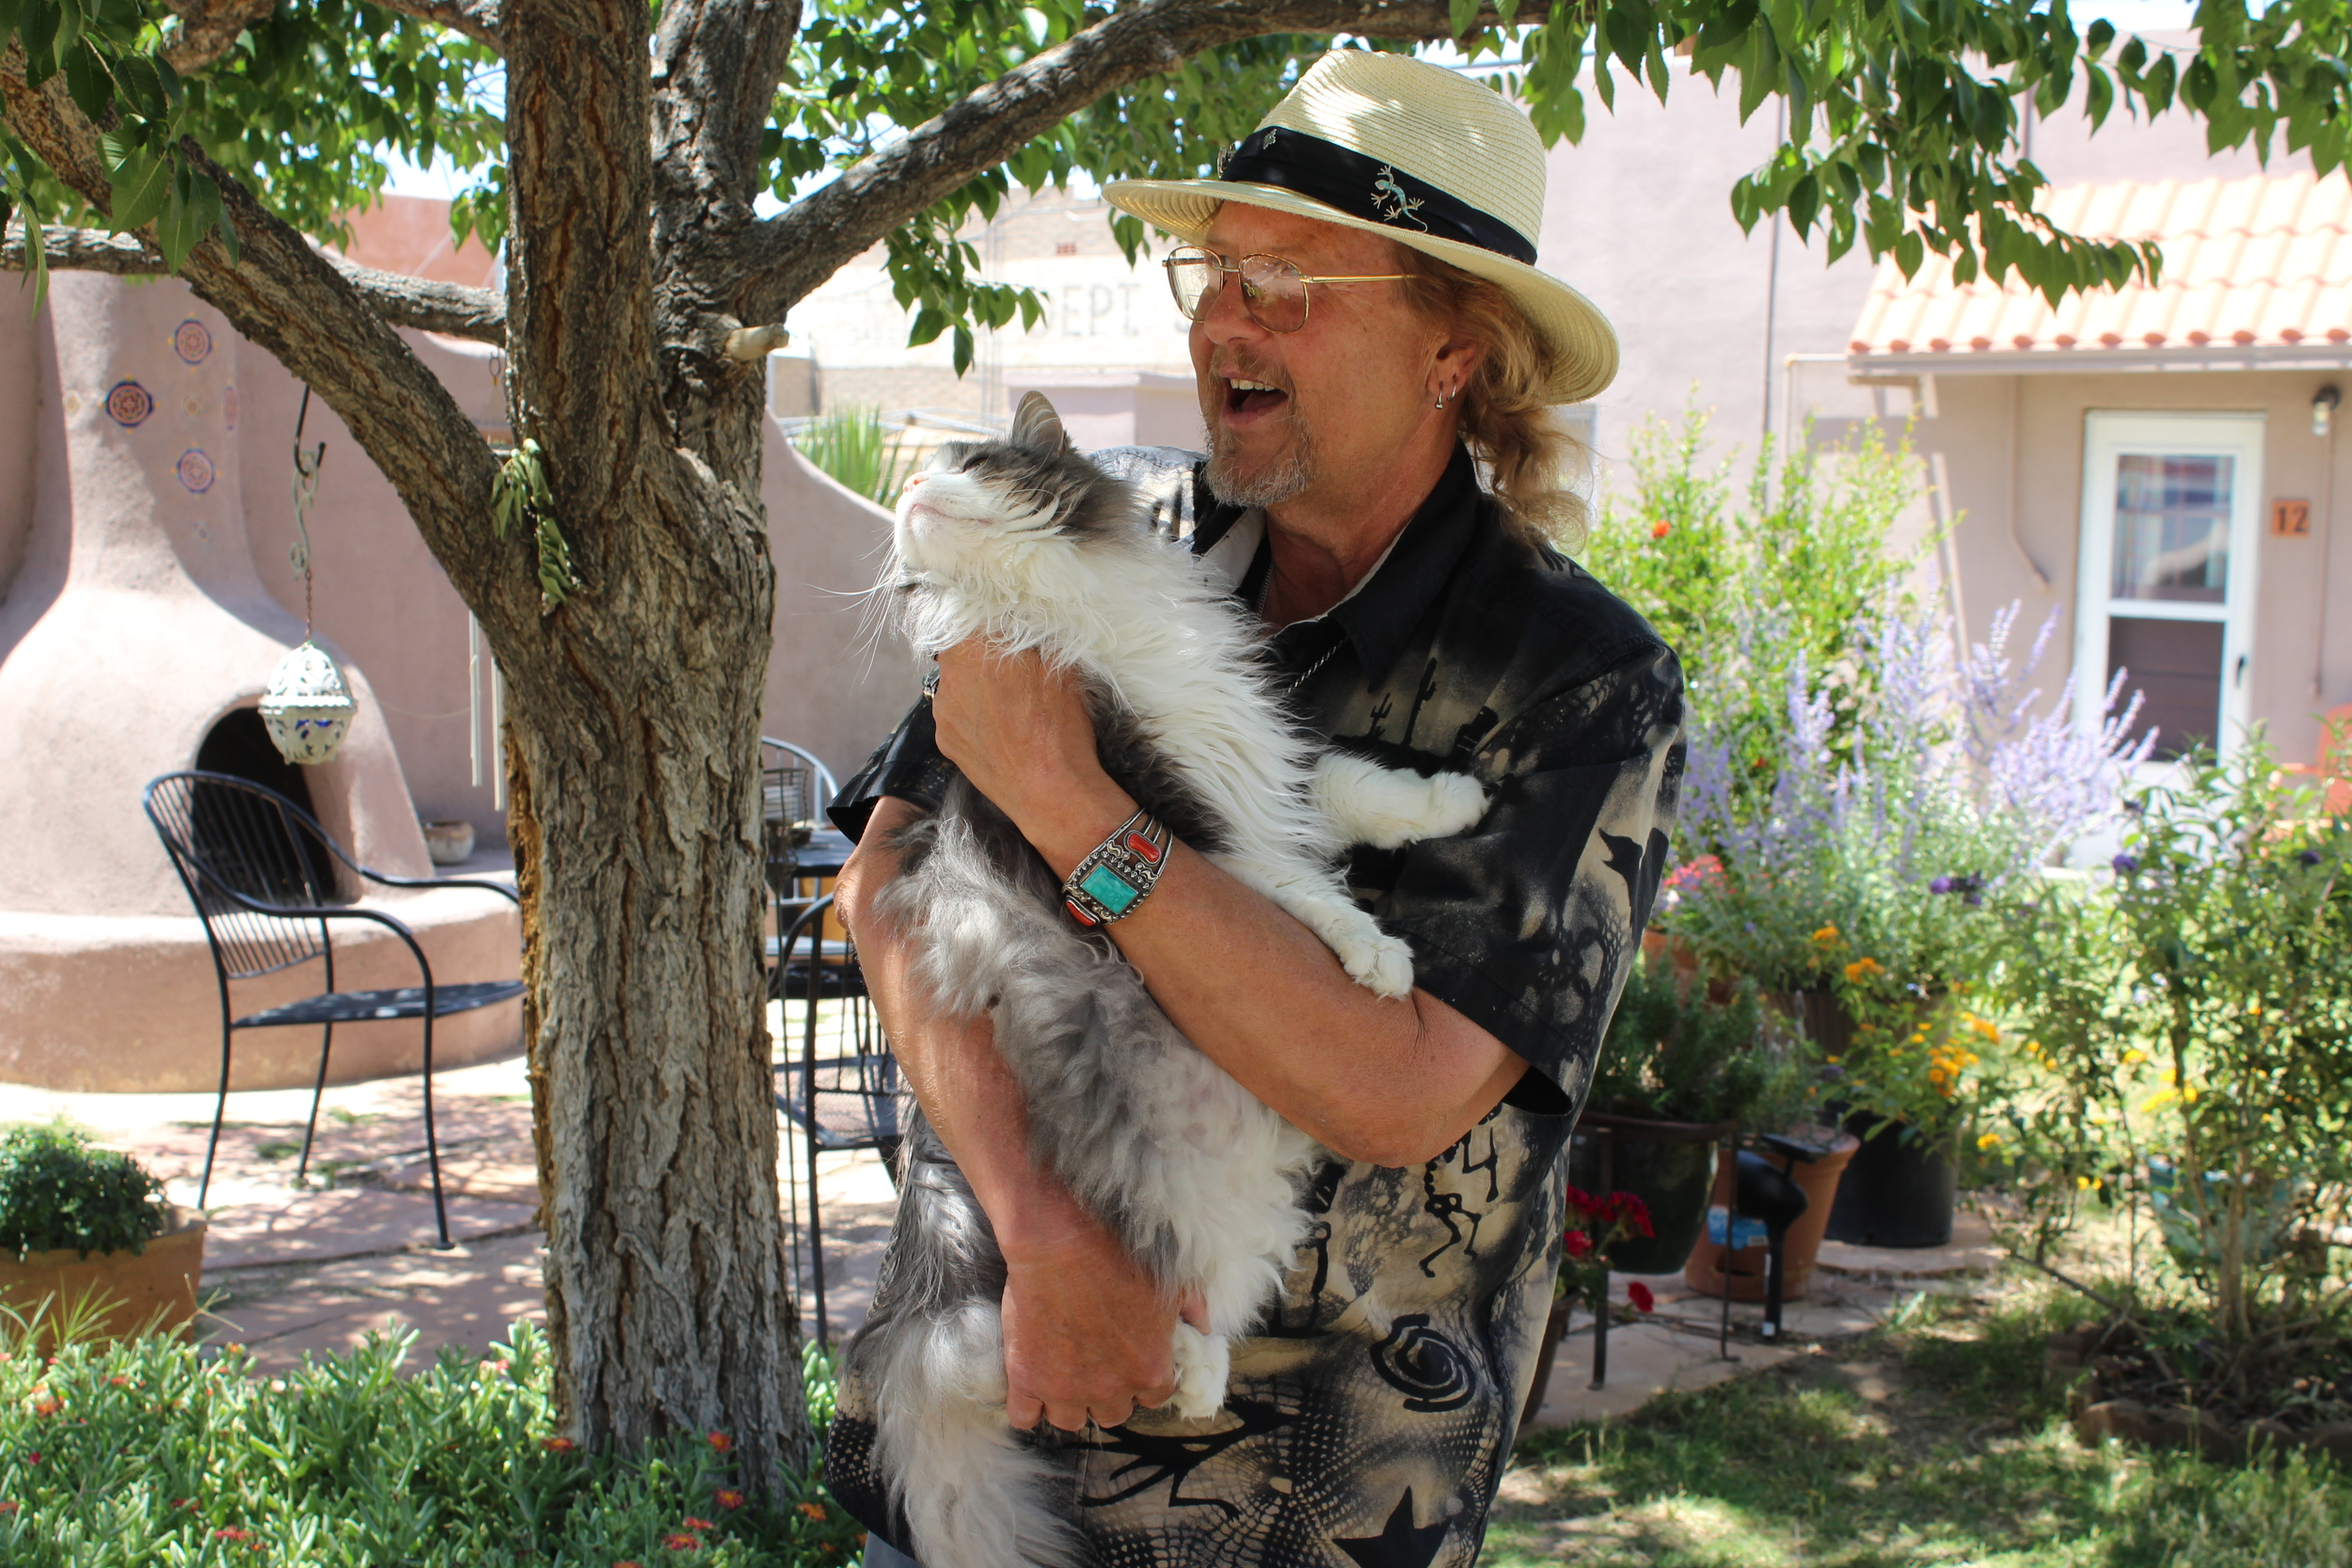 This is Christopher's cat Big Daddy. He found him in the desert and the two have been inseparable since. One time, while they were traveling around in Christopher's RV, Big Daddy jumped into another truck and started checking out the pedals. The truck-owner, who happened to be a fellow fortune teller, said that Big Daddy used to be a trucker in another lifetime. Christopher says this explains how content Big Daddy is in a car. They've traveled the country together.